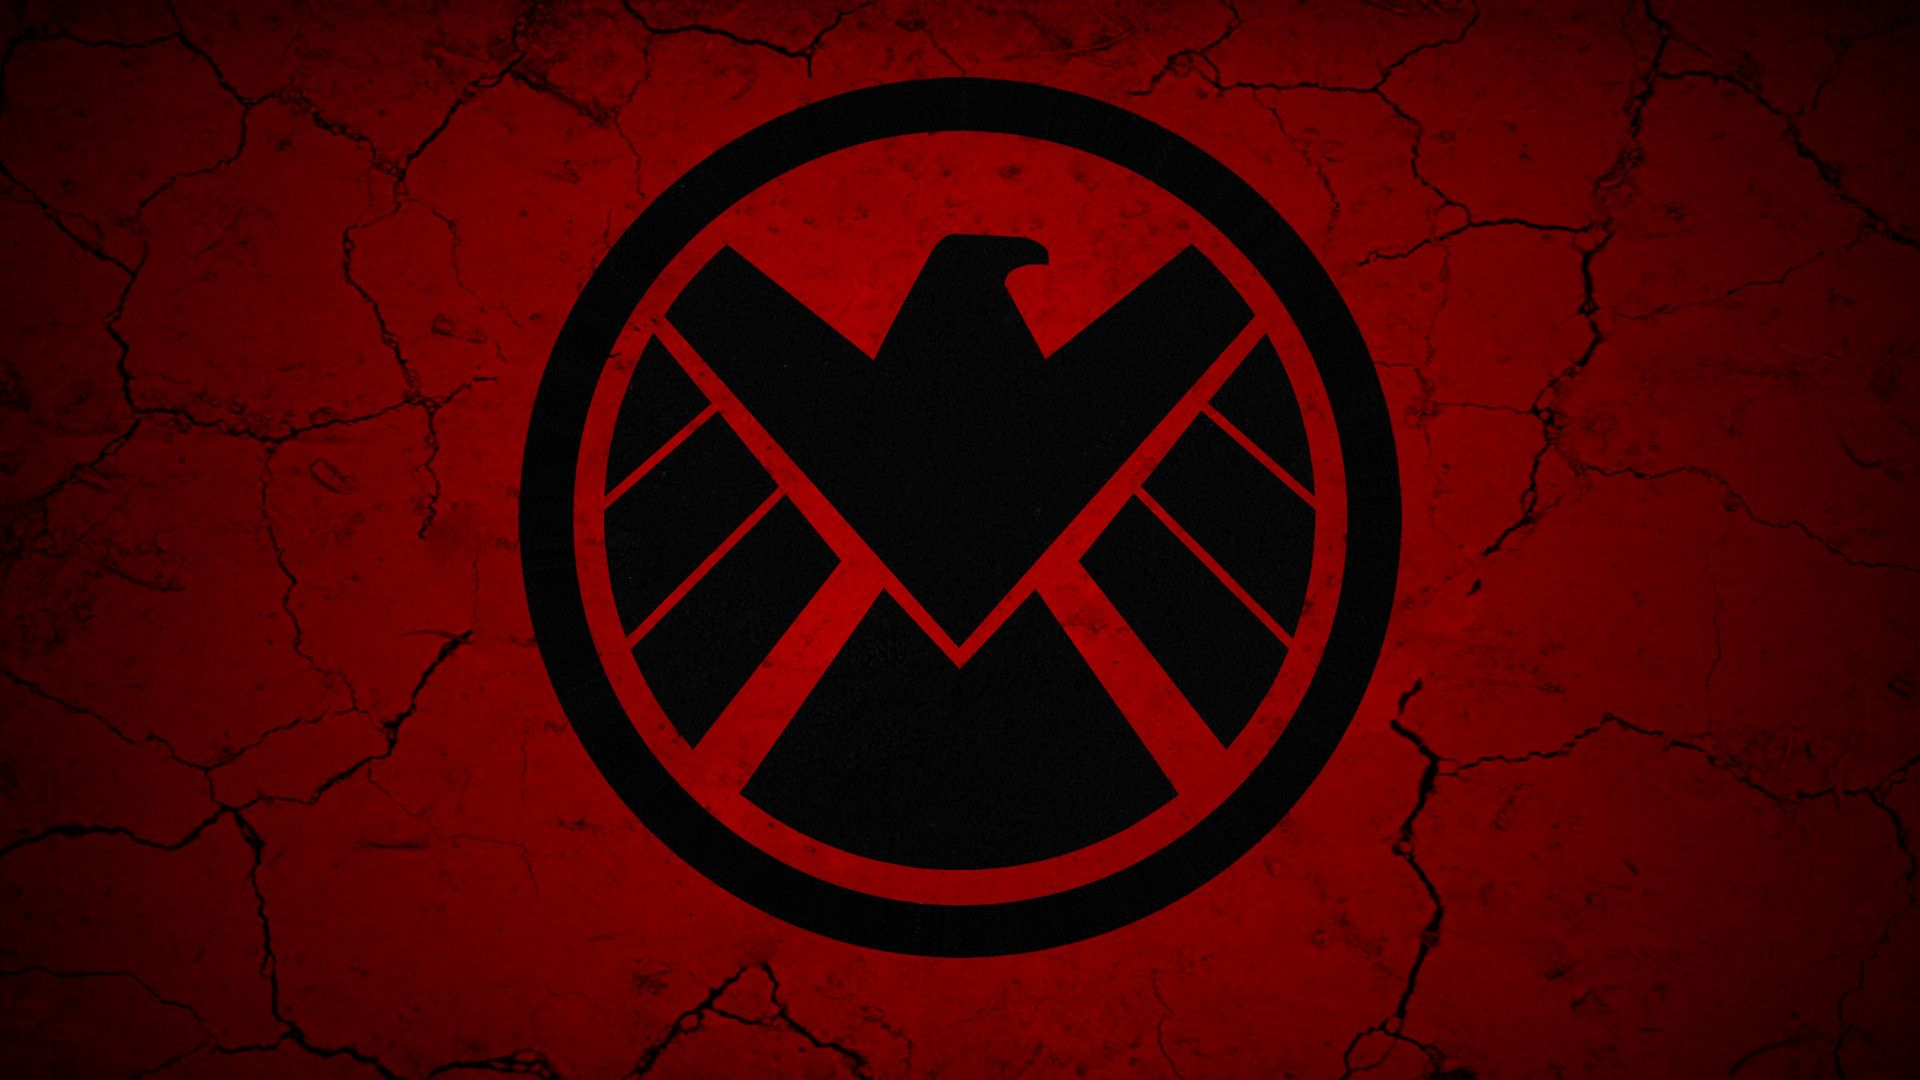 Marvel S H I E L D Logo Wallpapers Top Free Marvel S H I E L D